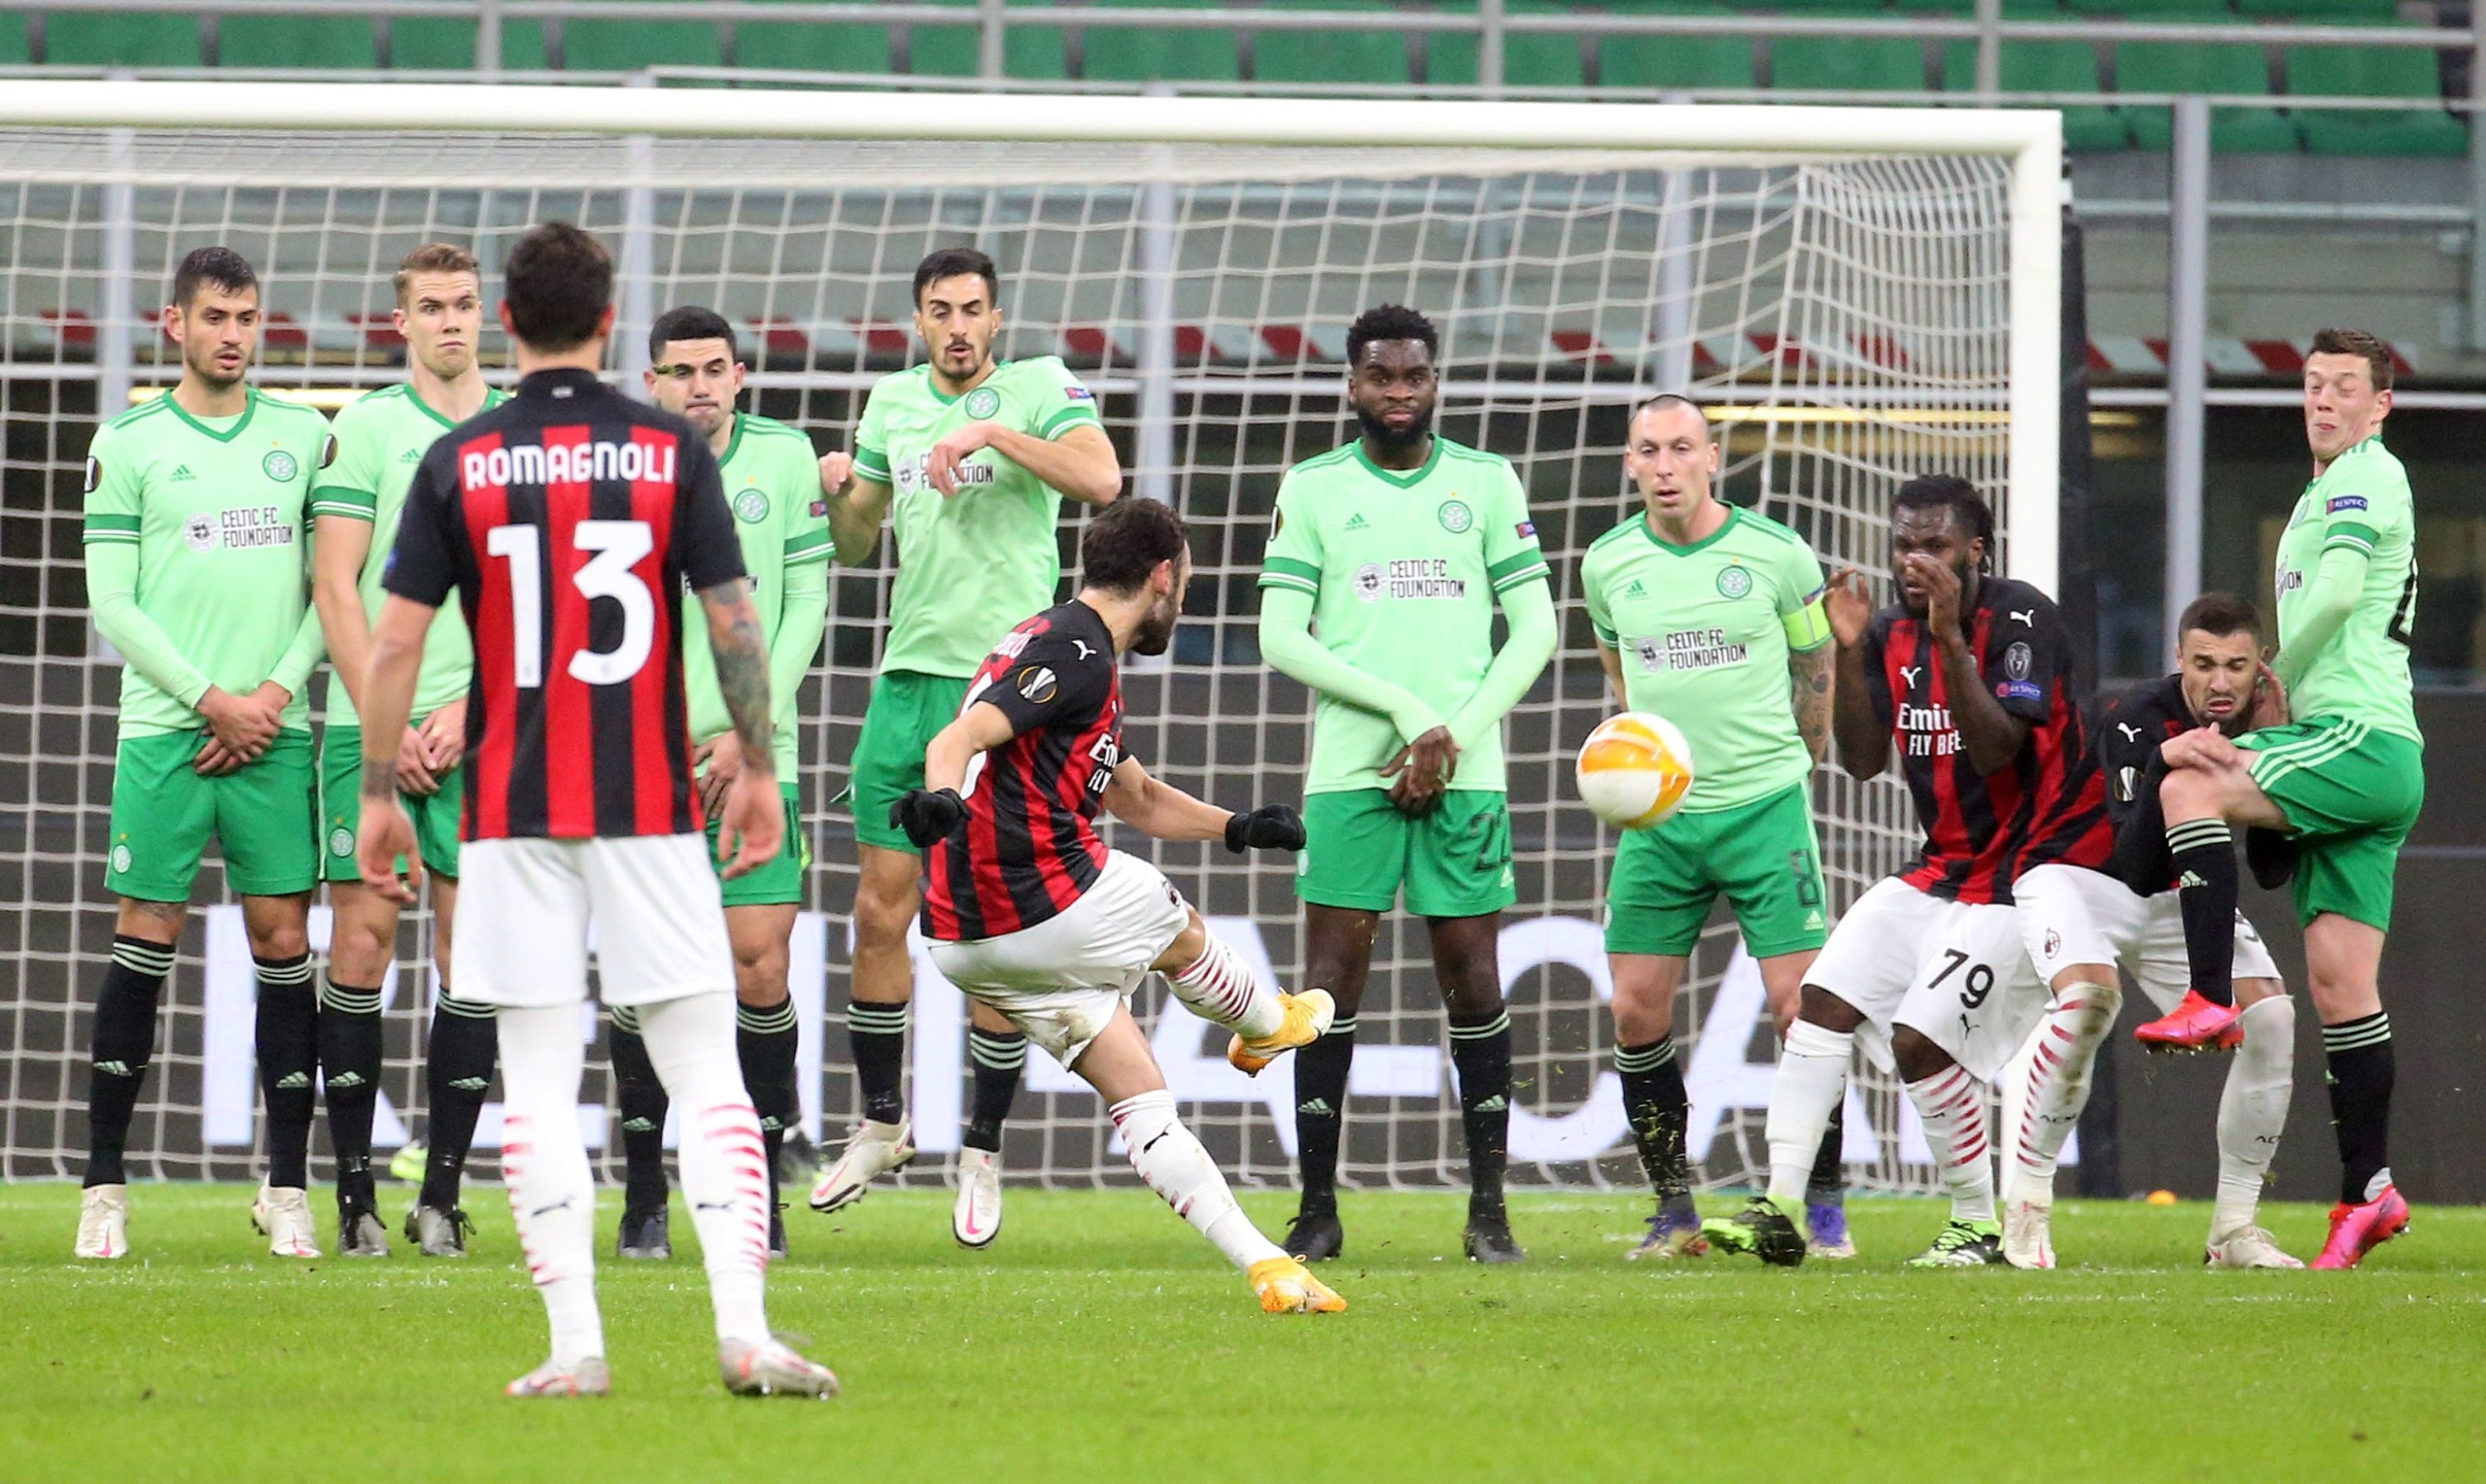 Milan's Hakan Çalhanoğlu (C) scores his team's first goal during the UEFA Europa League Group H soccer match against Celtic at Giuseppe Meazza stadium in Milan, Italy, Dec. 3, 2020. (EPA Photo)